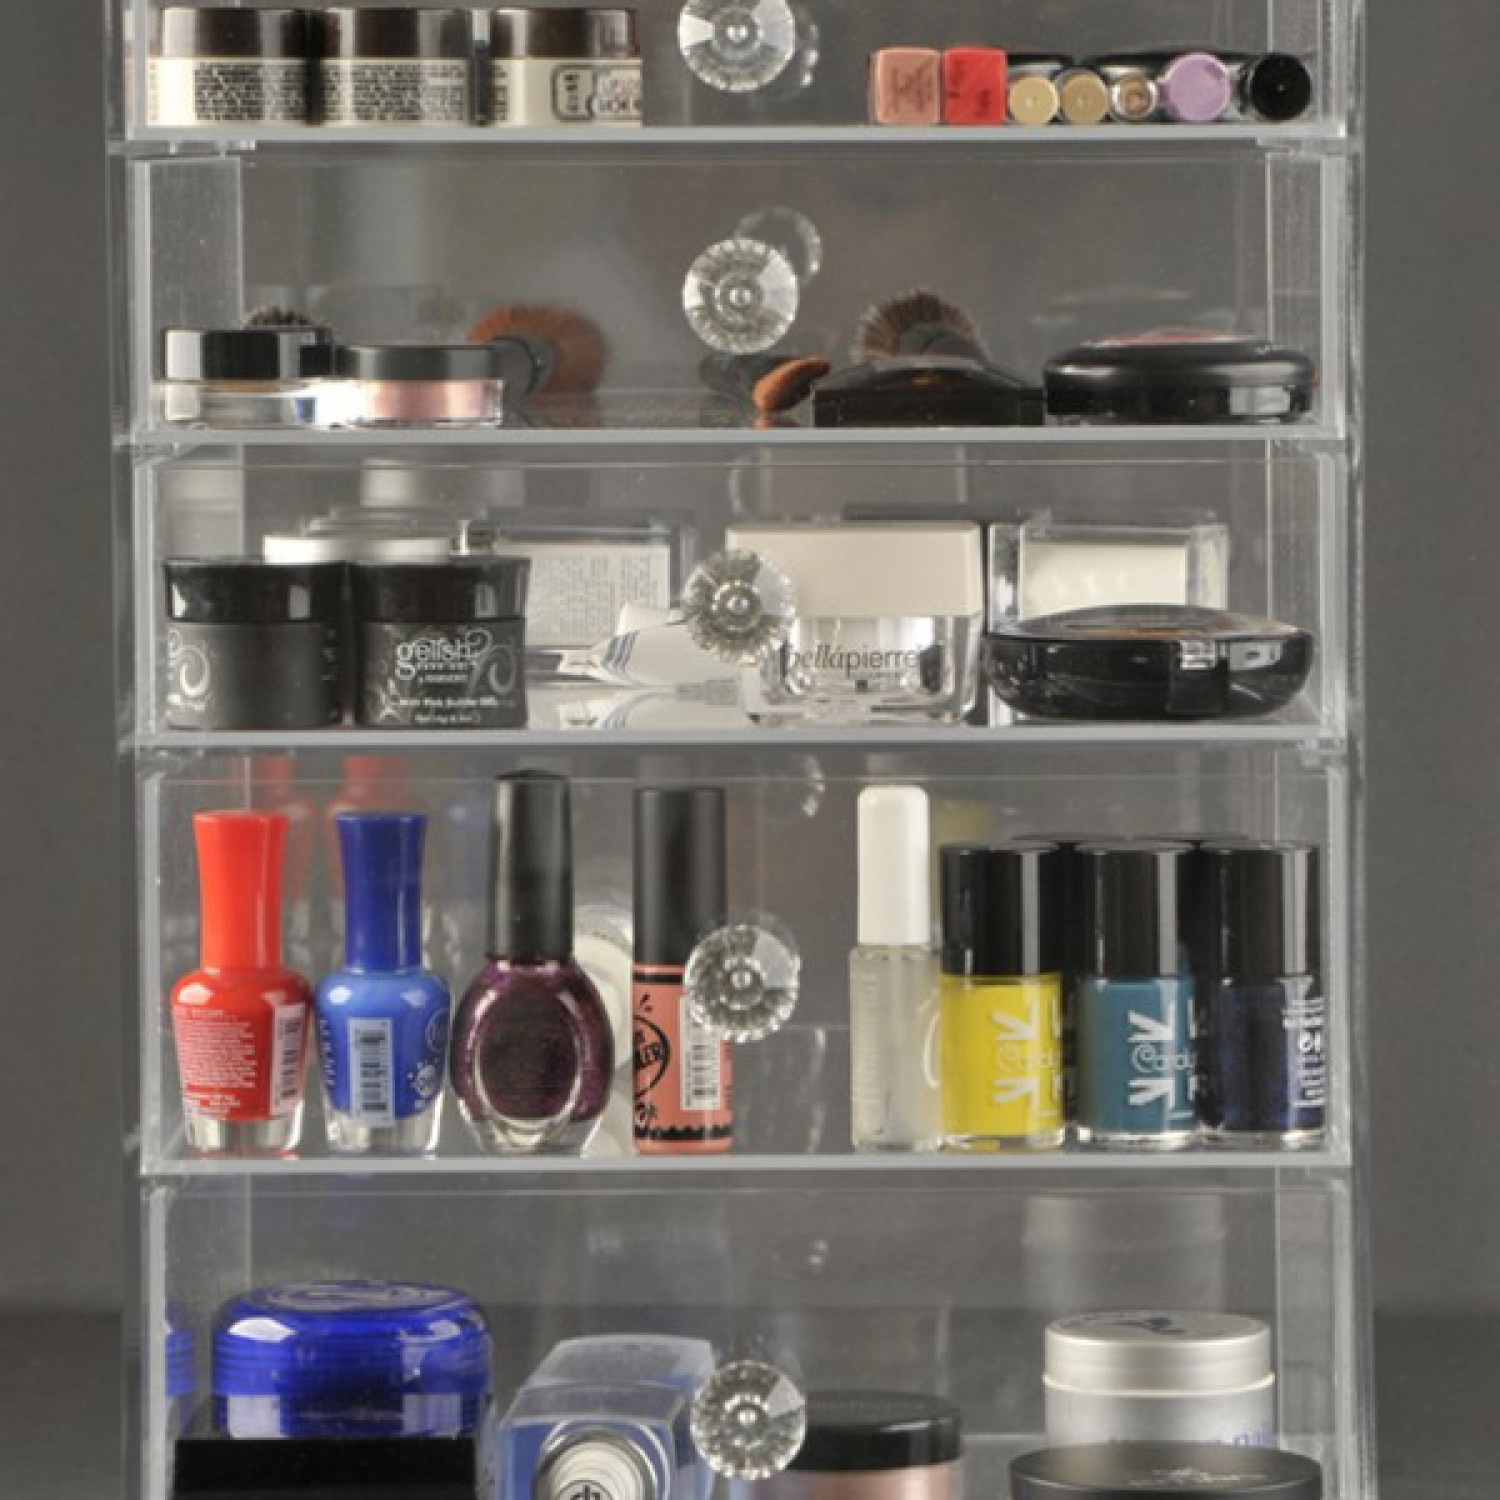 GlamoureBox Luxury Cosmetic Organizer and Makeup Storage (A5R-K) Infographic